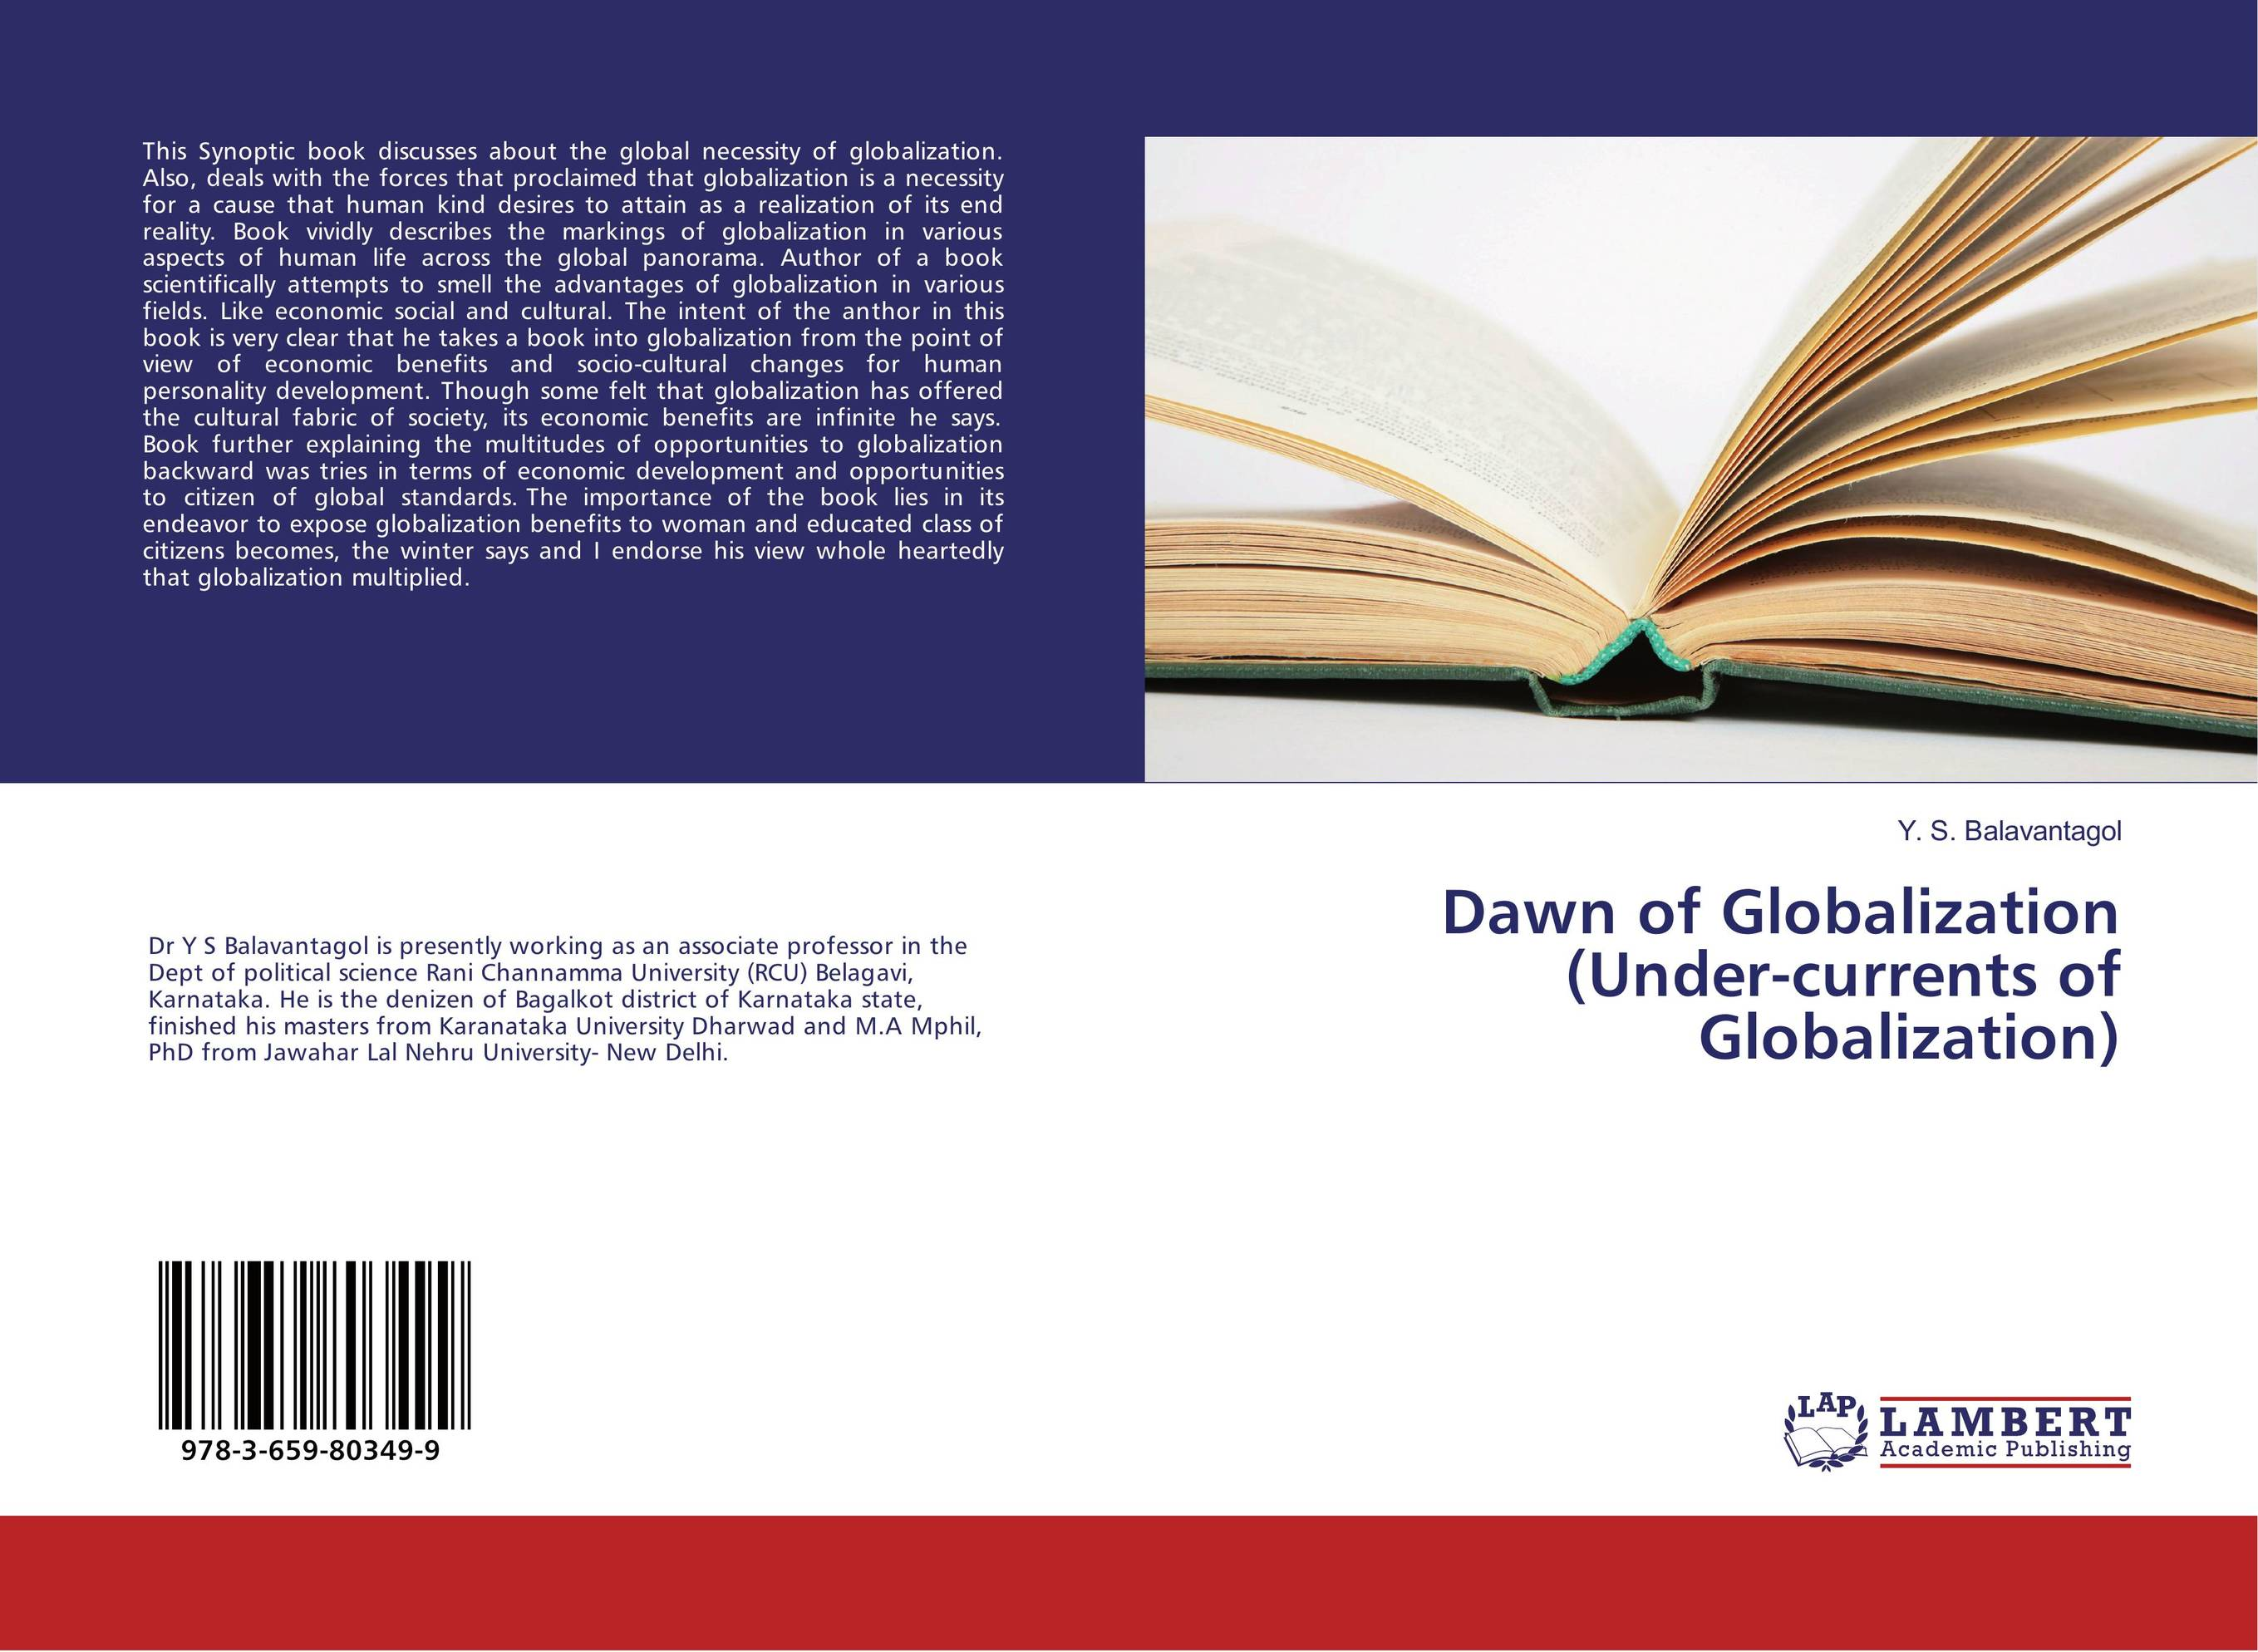 Dawn of Globalization (Under-currents of Globalization)